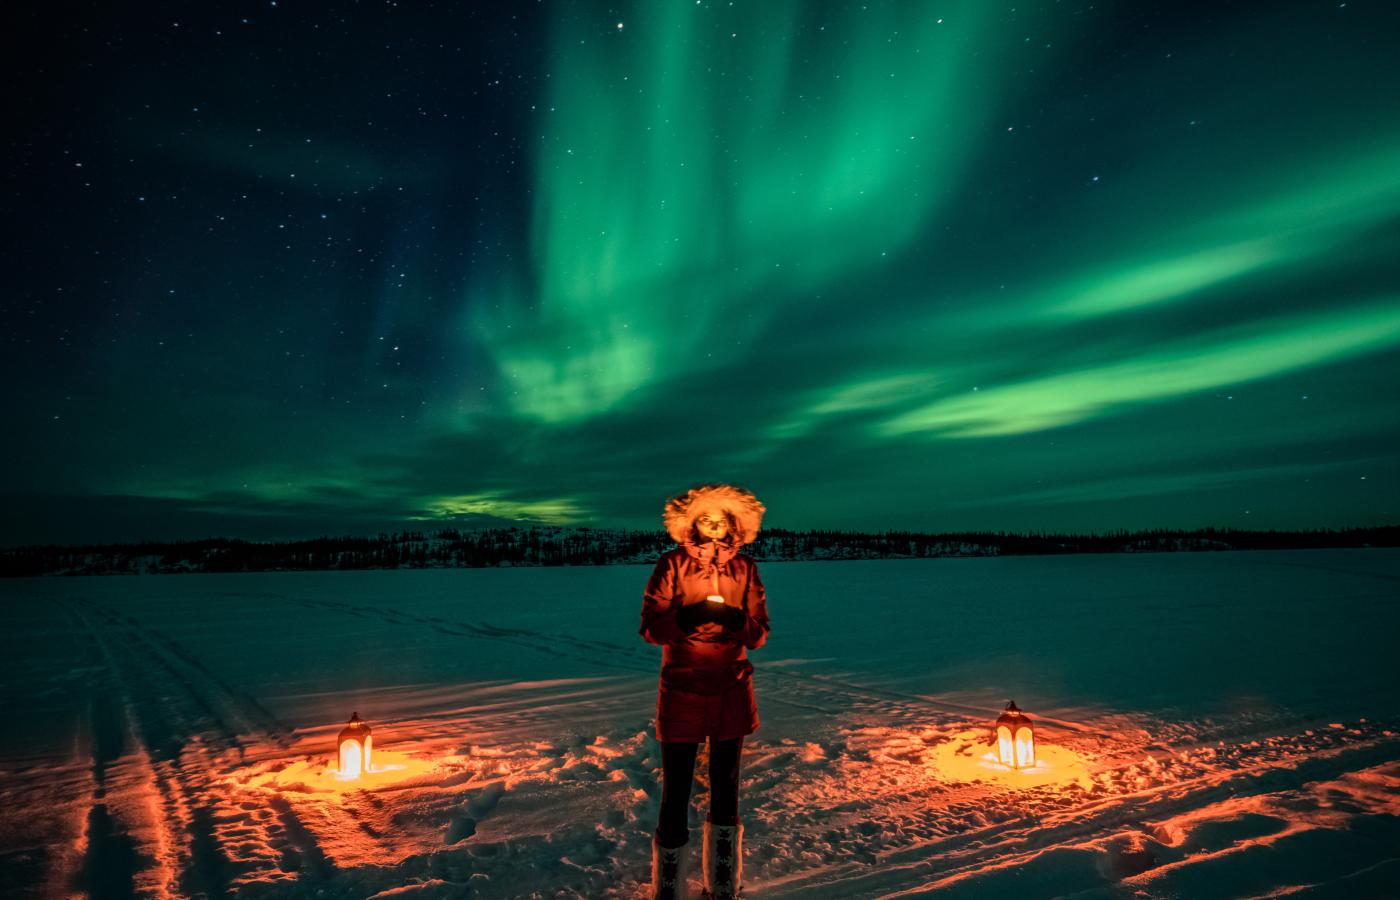 woman holding lantern in the snow under the aurora northern lights